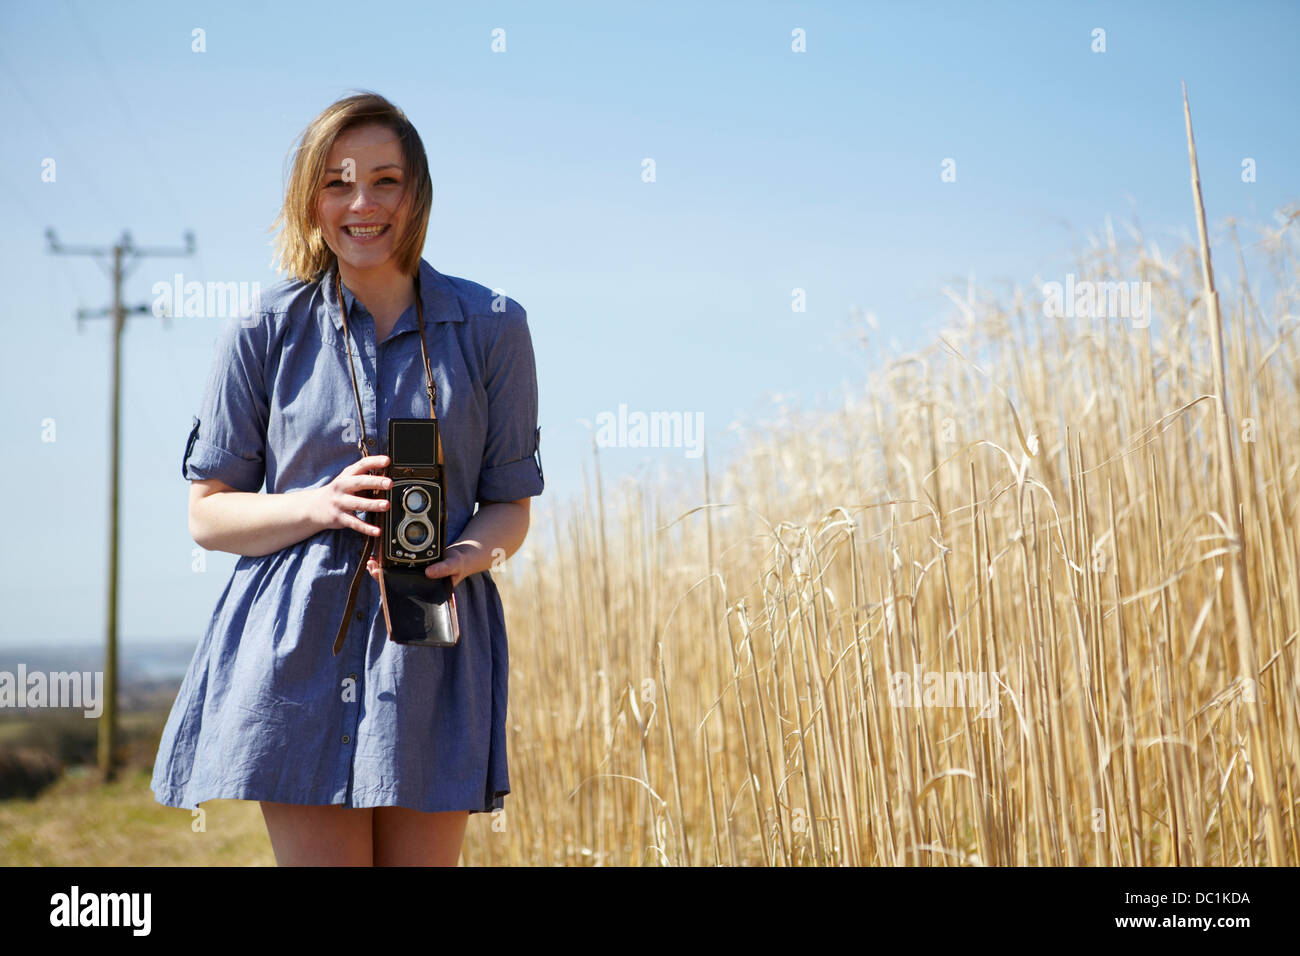 Portrait of young woman holding camera - Stock Image